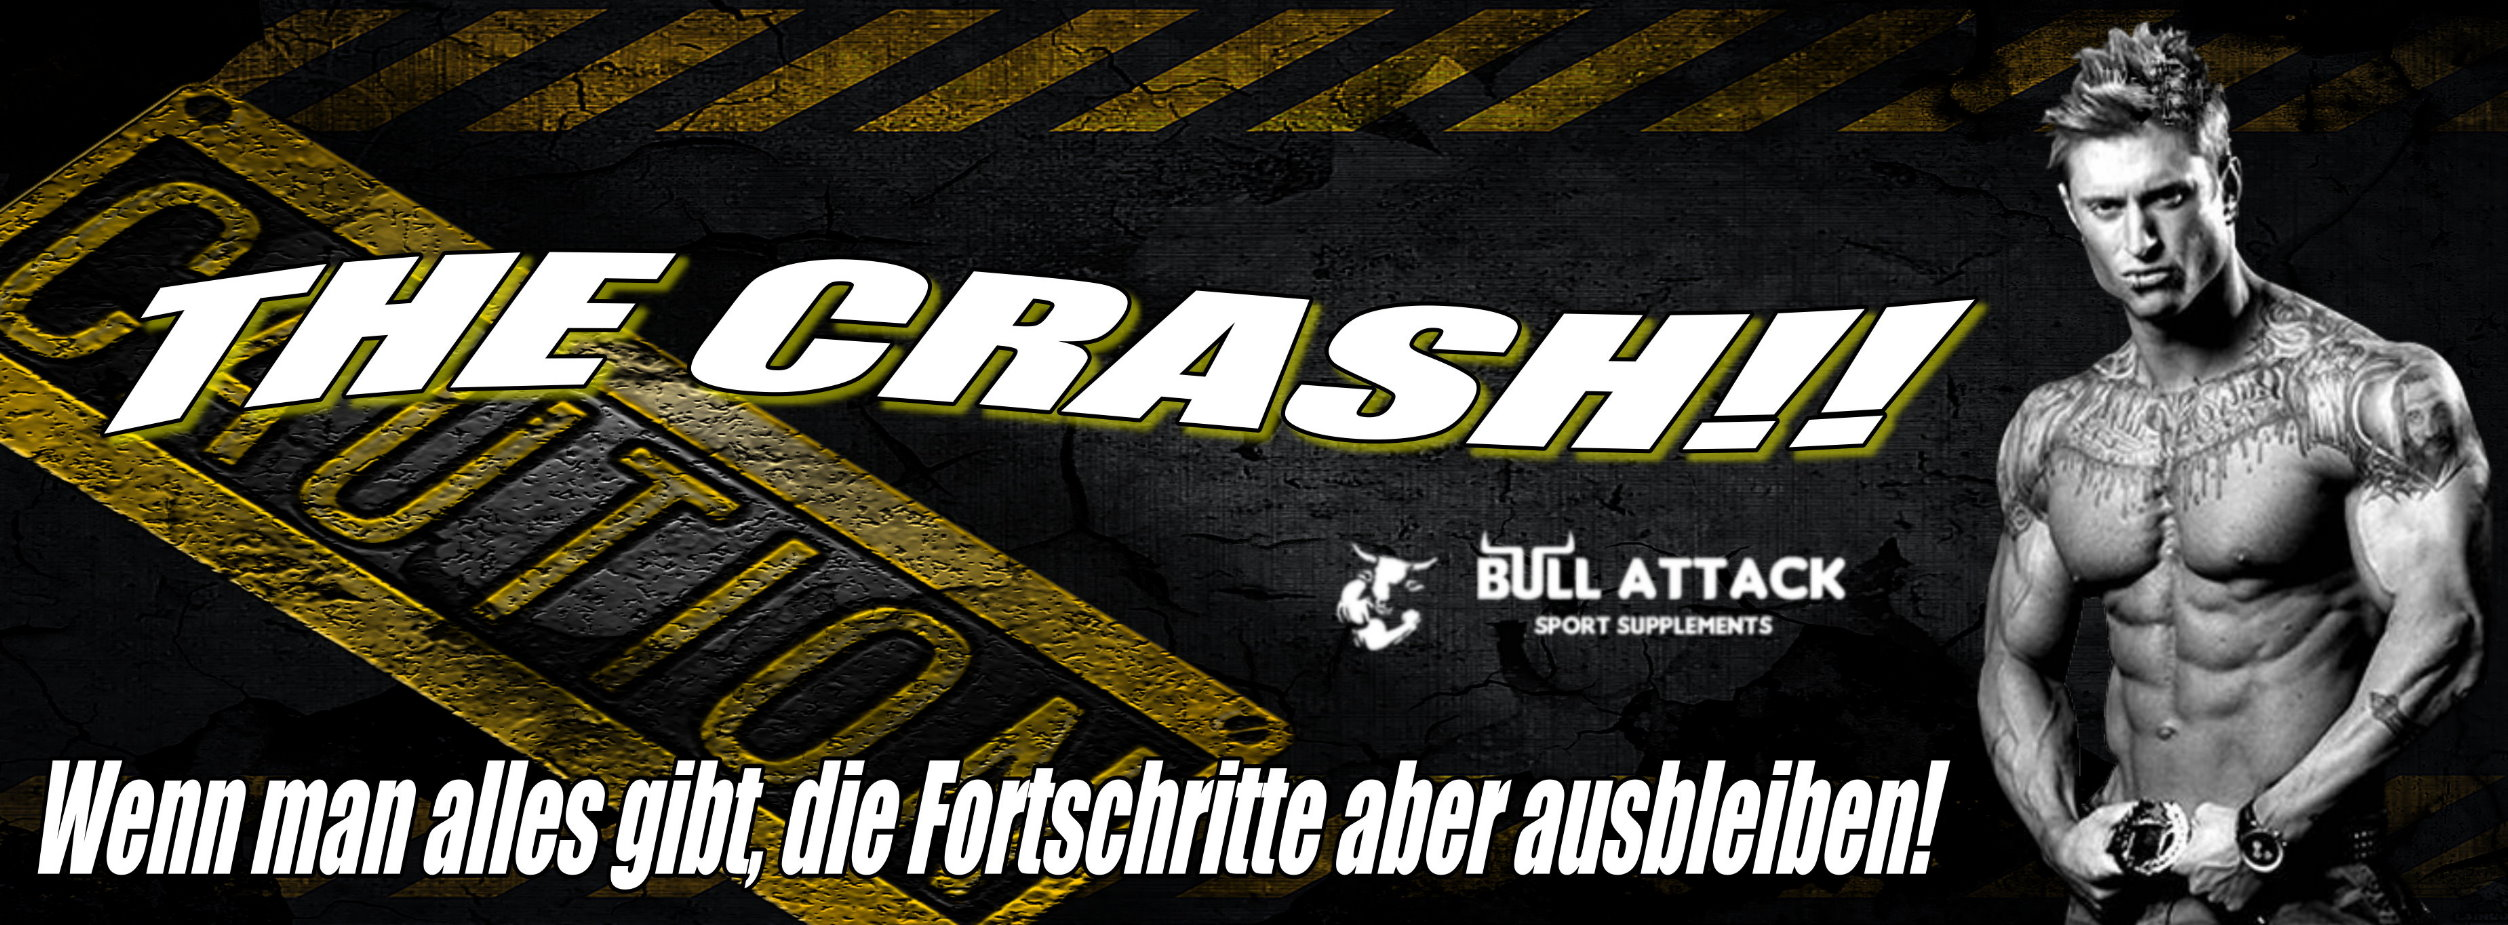 http://bull-attack.com/images/crash.jpg